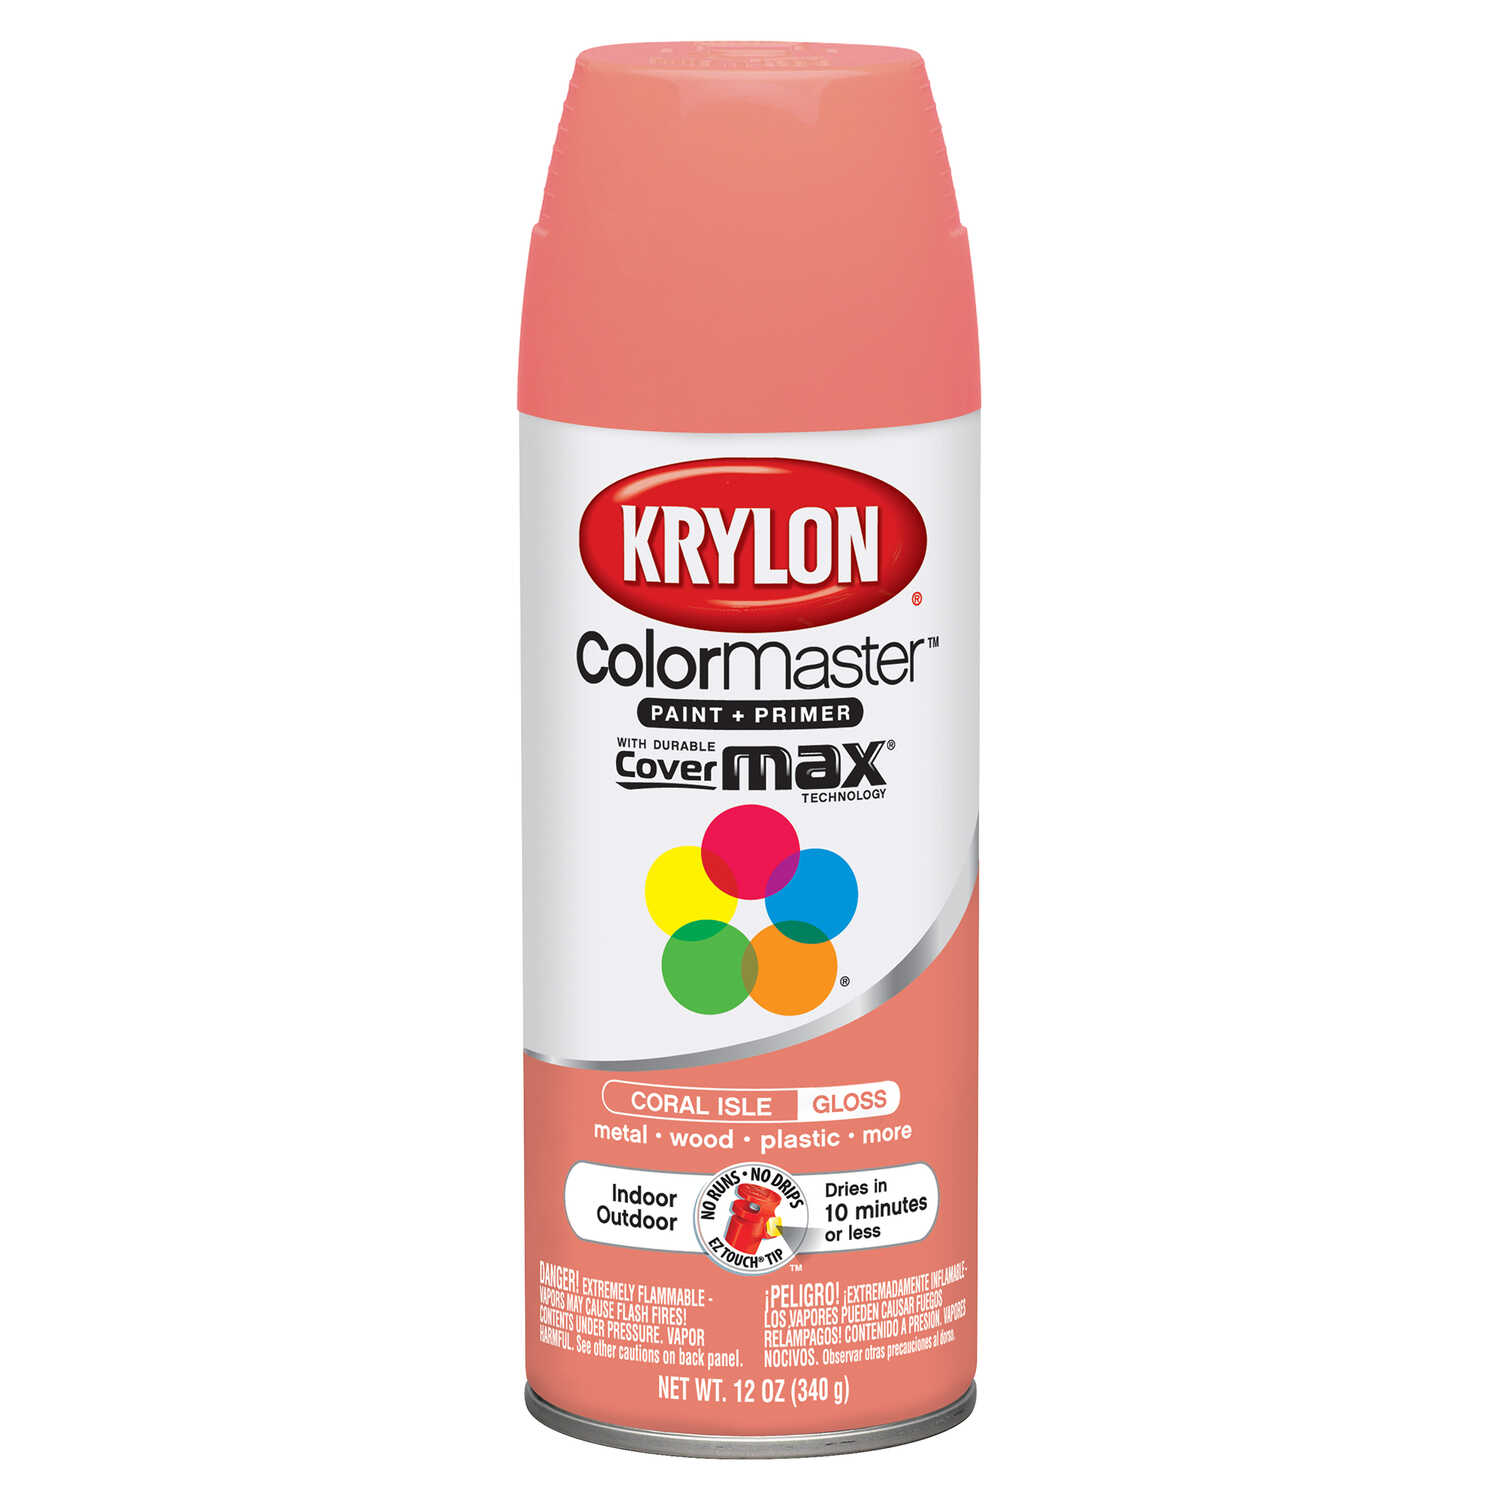 Krylon  ColorMaster  Gloss  Coral Isle  Spray Paint  12 oz.